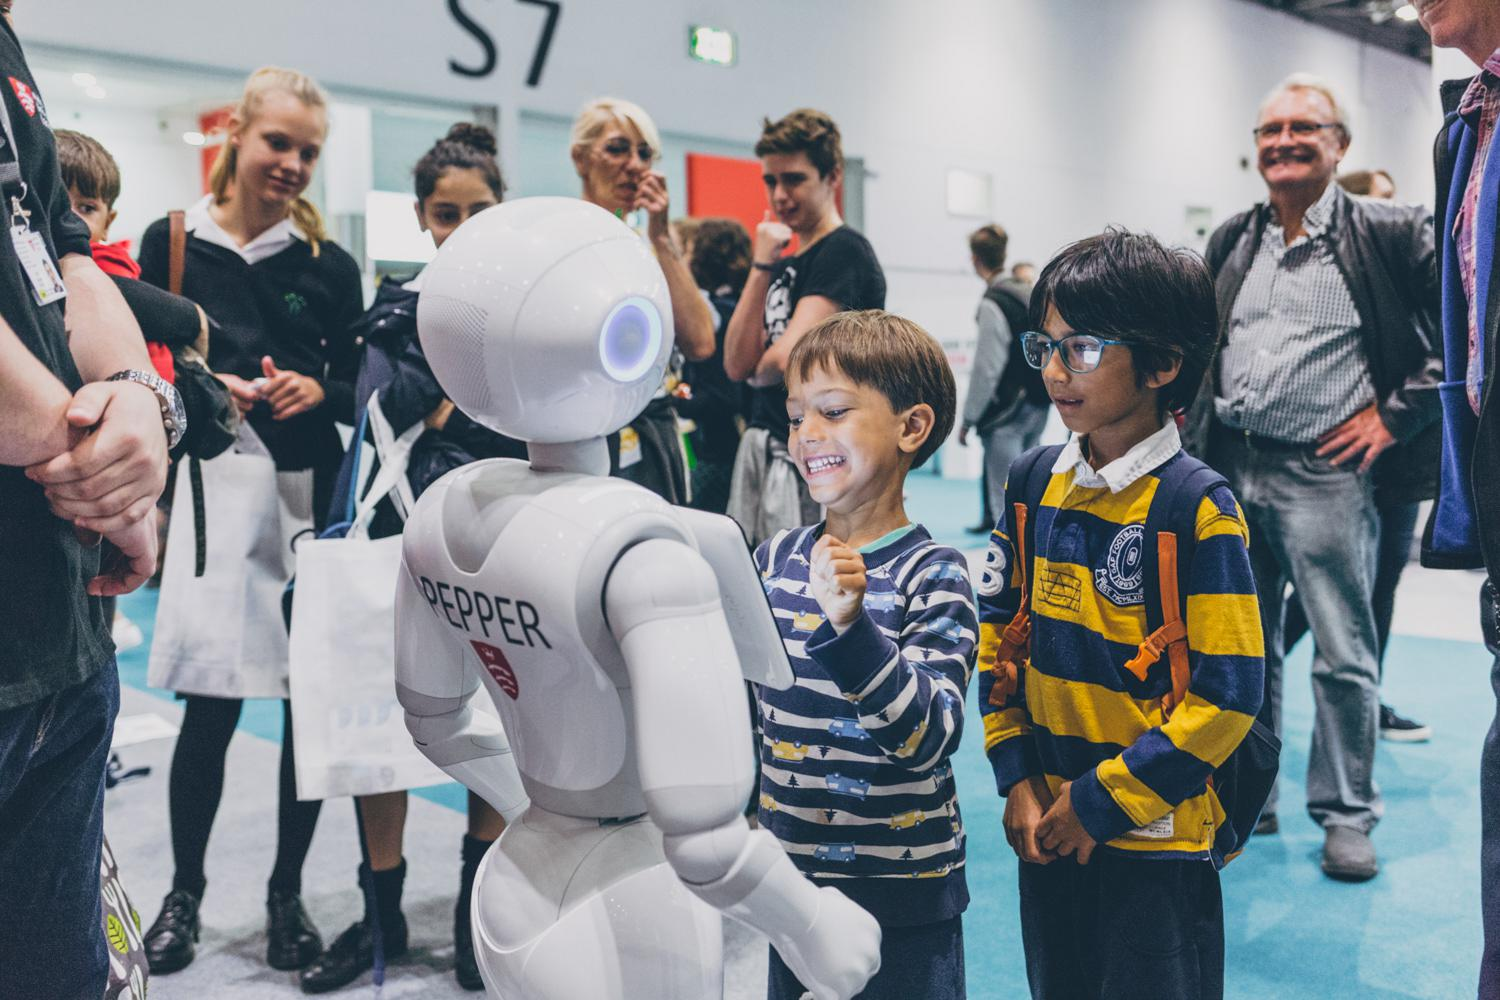 Kids interacting with robot at New Science Live